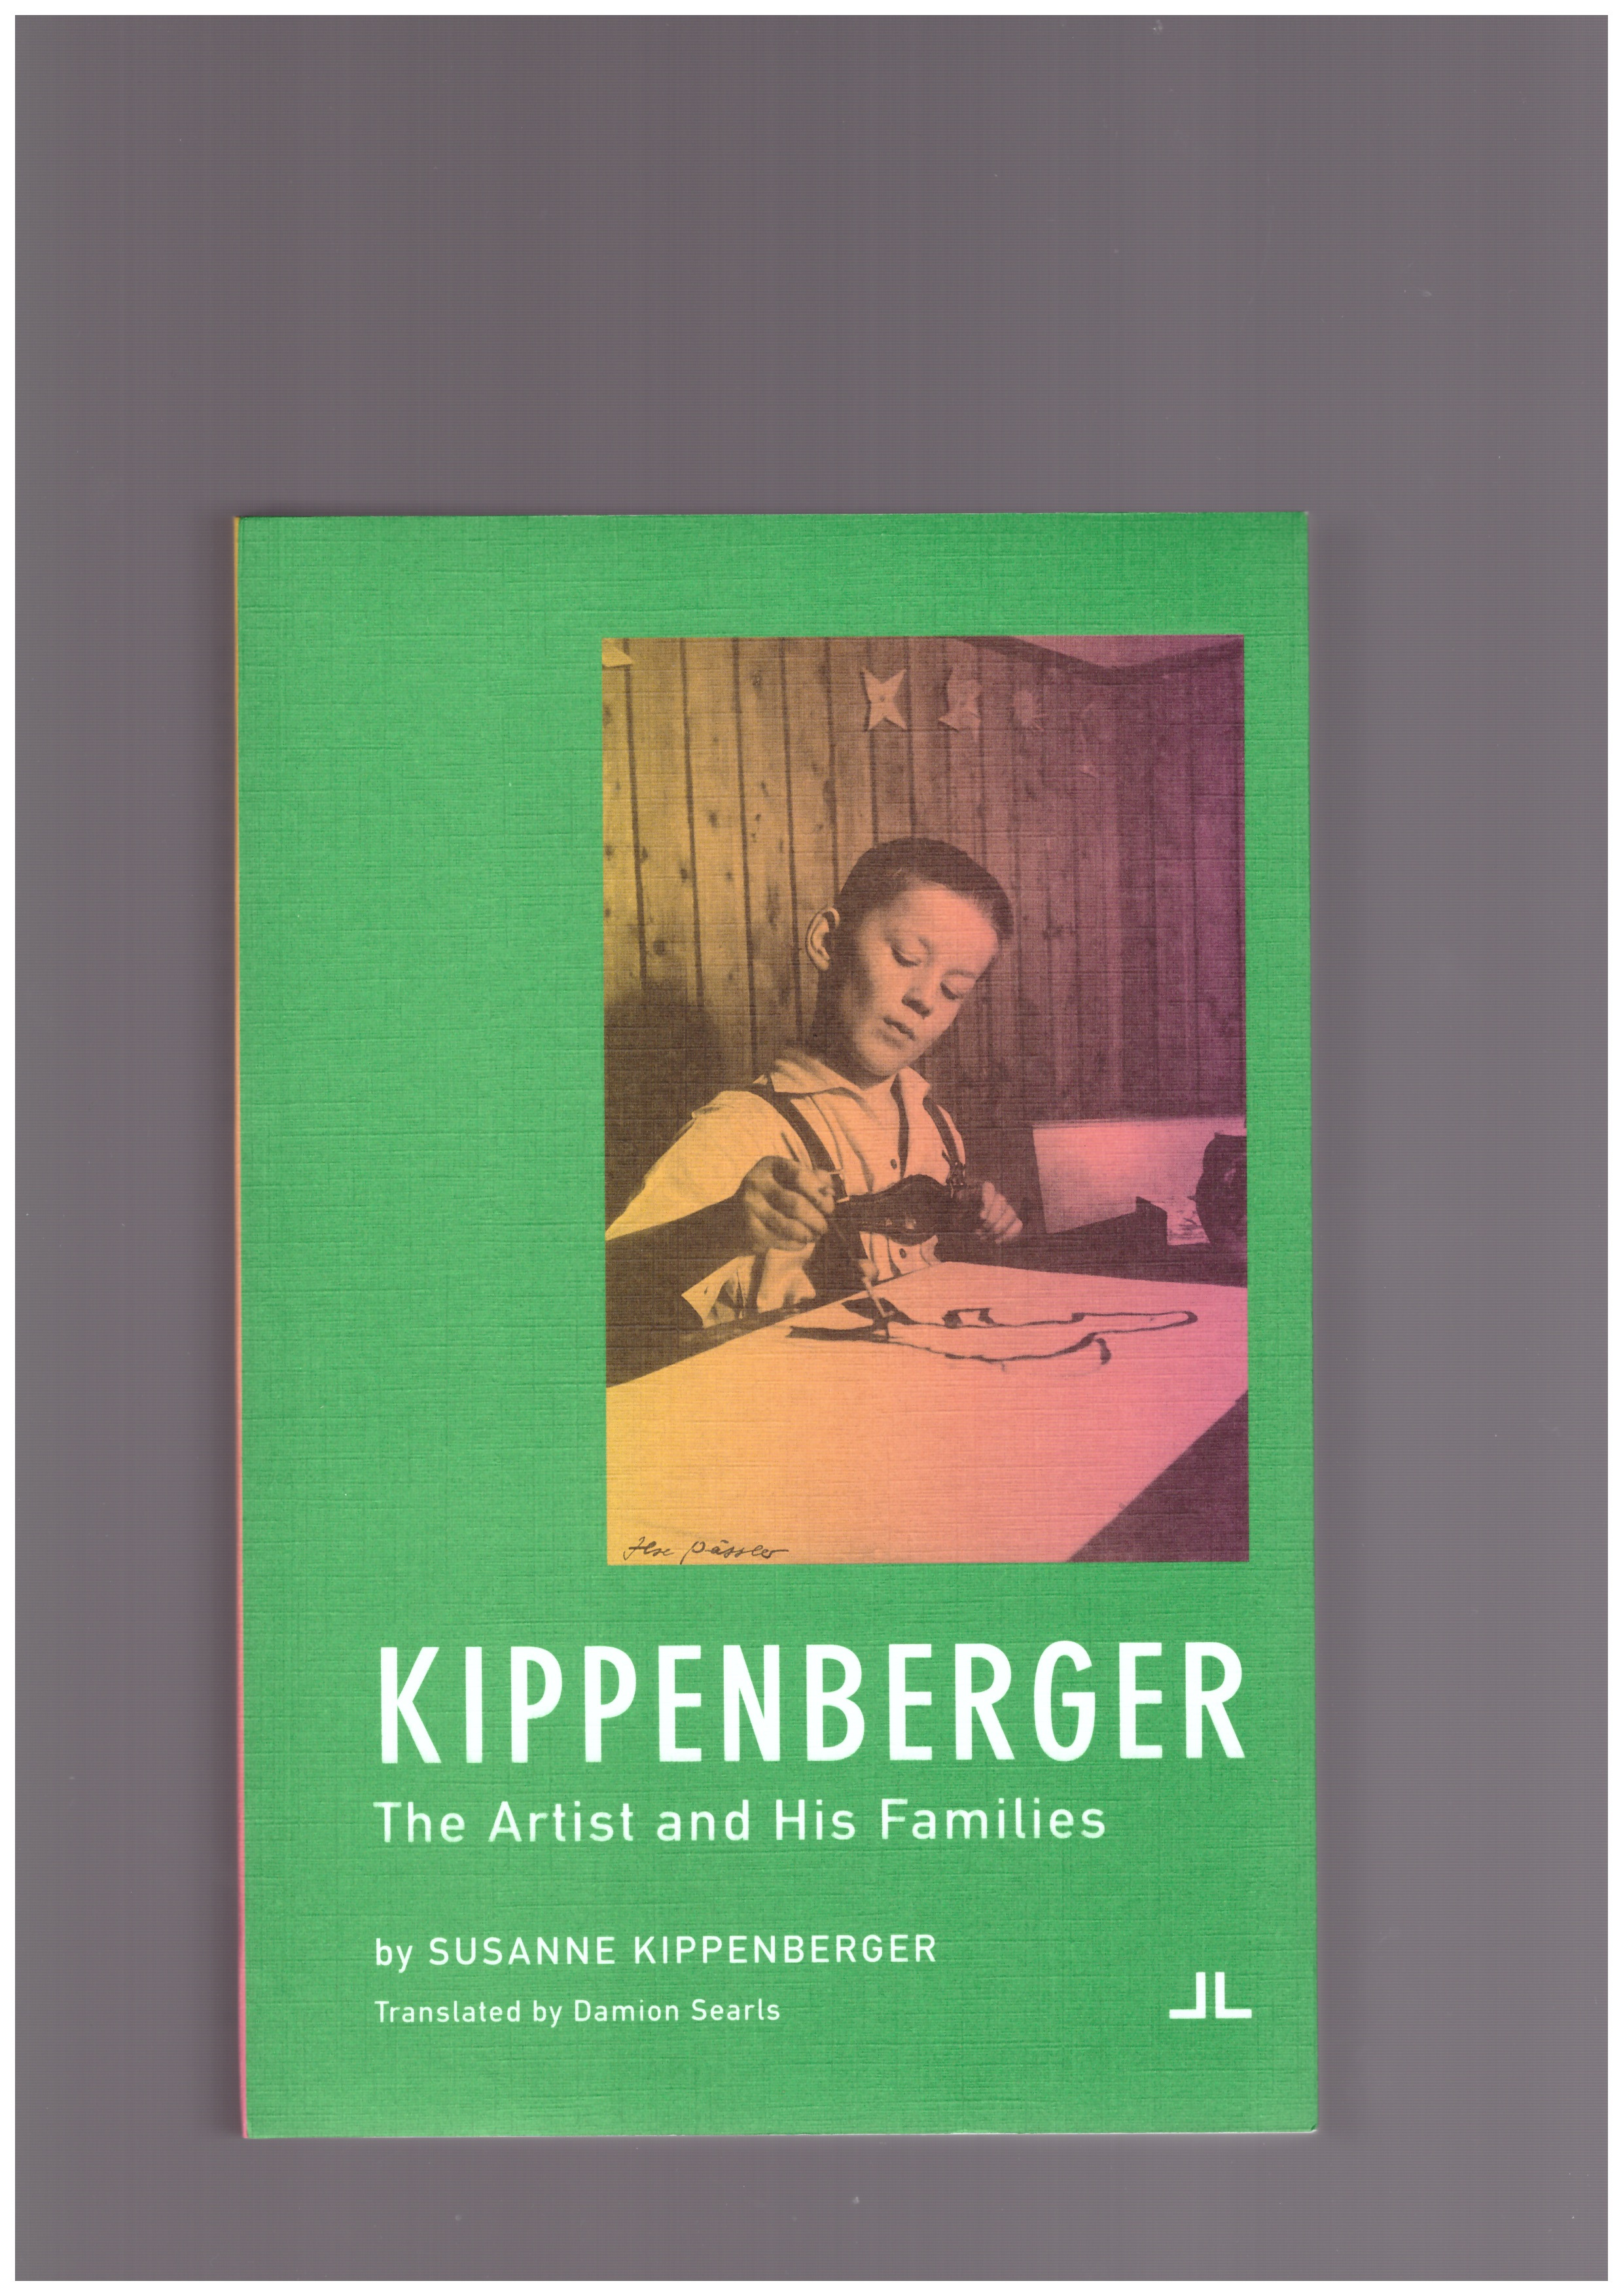 KIPPENBERGER, Susanne - Kippenberger: The Artist and His Families